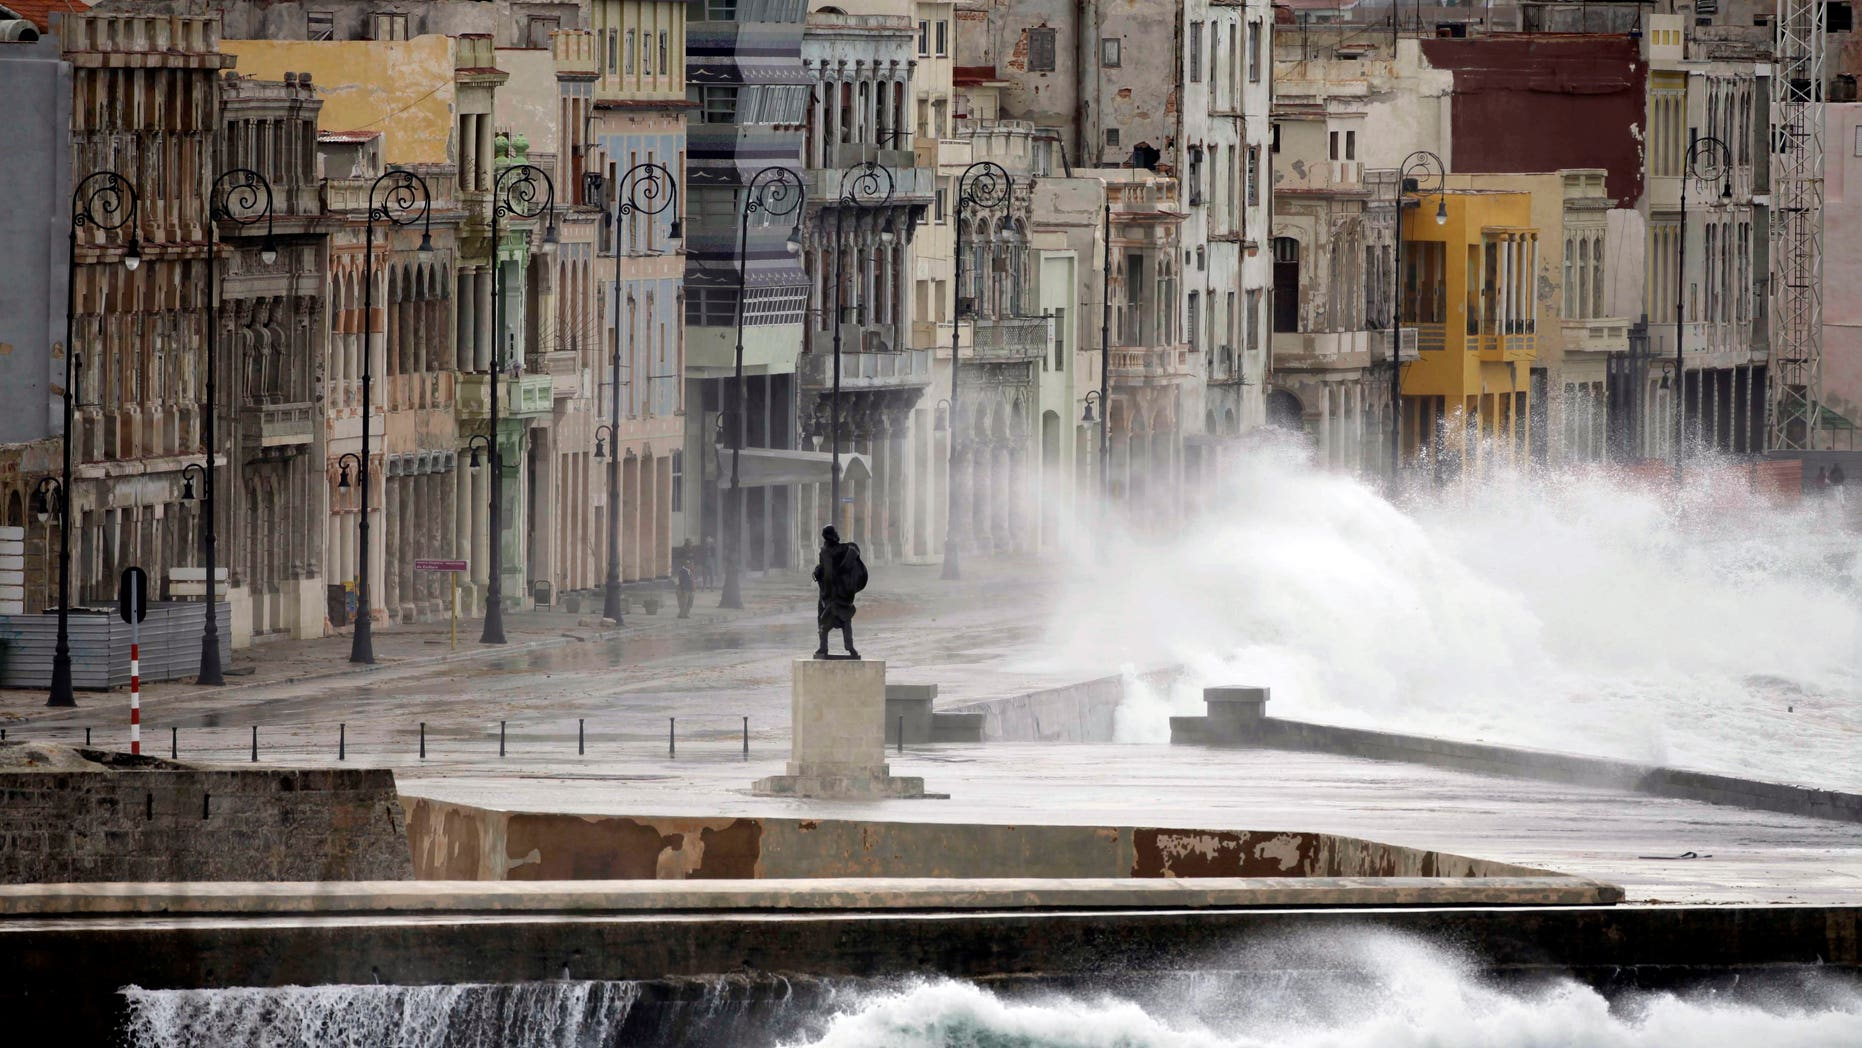 FILE - In this Dec. 13, 2010 file photo, a statue of Venezuelan independence hero Francisco de Miranda stands as waves splash over the sea wall onto Malecon Avenue during heavy winds in Havana, Cuba. Thousands of Cuban-Americans are heading to Havana this holiday season carrying everything from electronics and medicine to clothing and toiletries to help relatives back home supplement monthly salaries averaging about $20. Not only are Cuban-Americans visiting the island in far greater numbers since President Barack Obama lifted travel restrictions last year, they are bringing more stuff. One carrier says the average bag weight per passenger is up 55 percent _ and many Miami-Havana flights are shadowed by a separate cargo plane just to haul the load. (AP Photo/Javier Galeano, File)